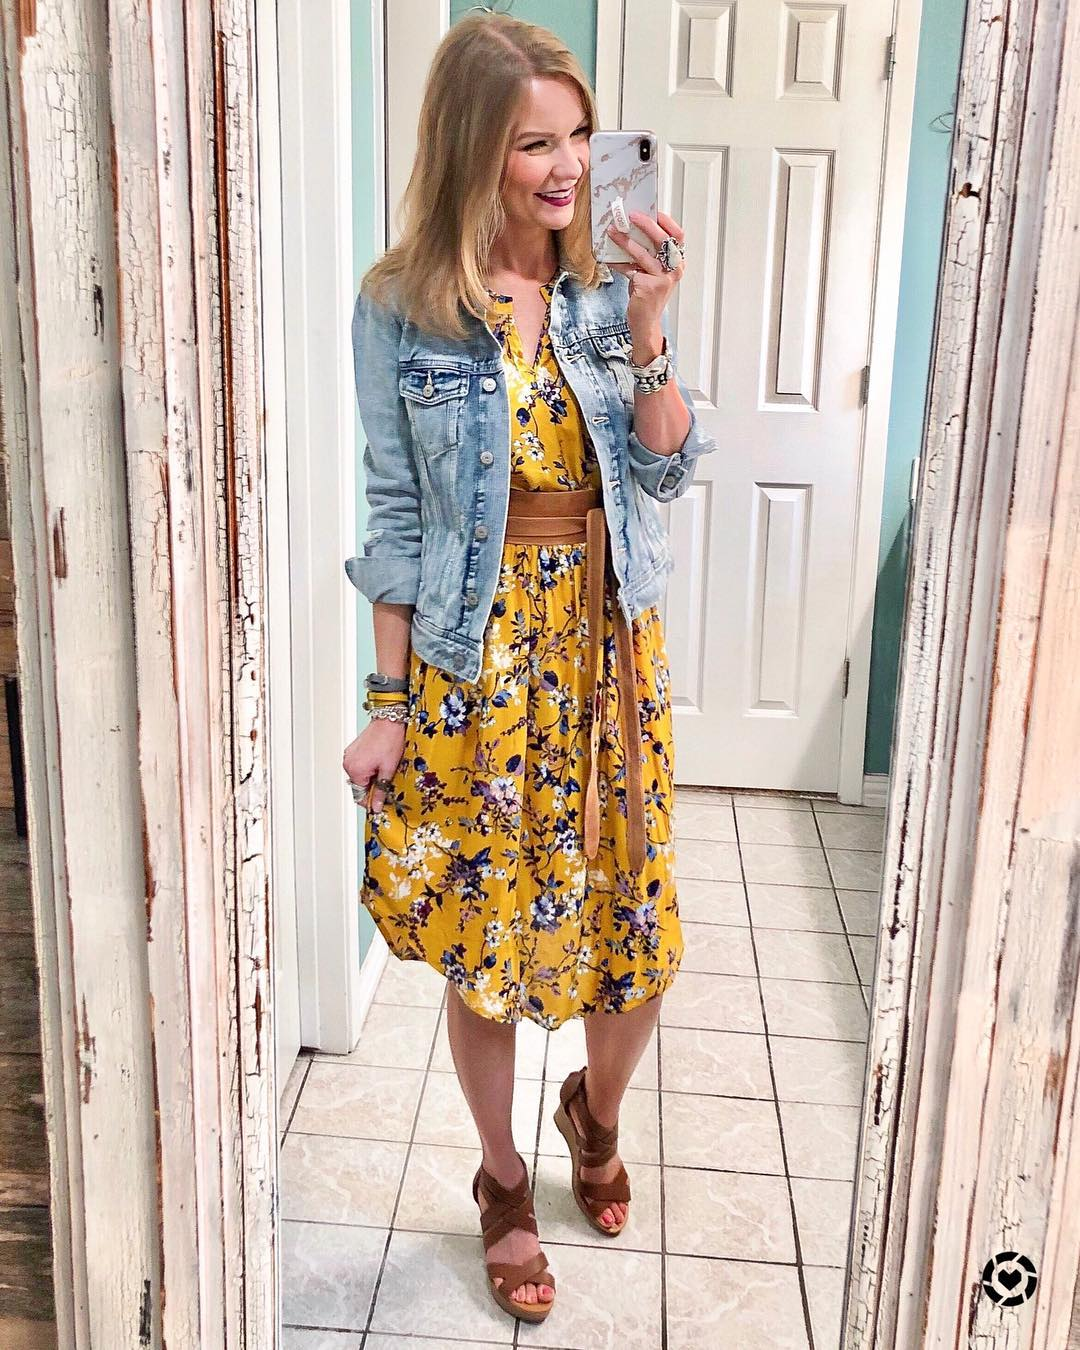 8b2d4a6648d ... Women s Floral Print Sleeveless V-Neck Cinched Waist Midi Dress - Xhilaration  Mustard Yellow! see all your loves · instagram photo by  lipglossleslie